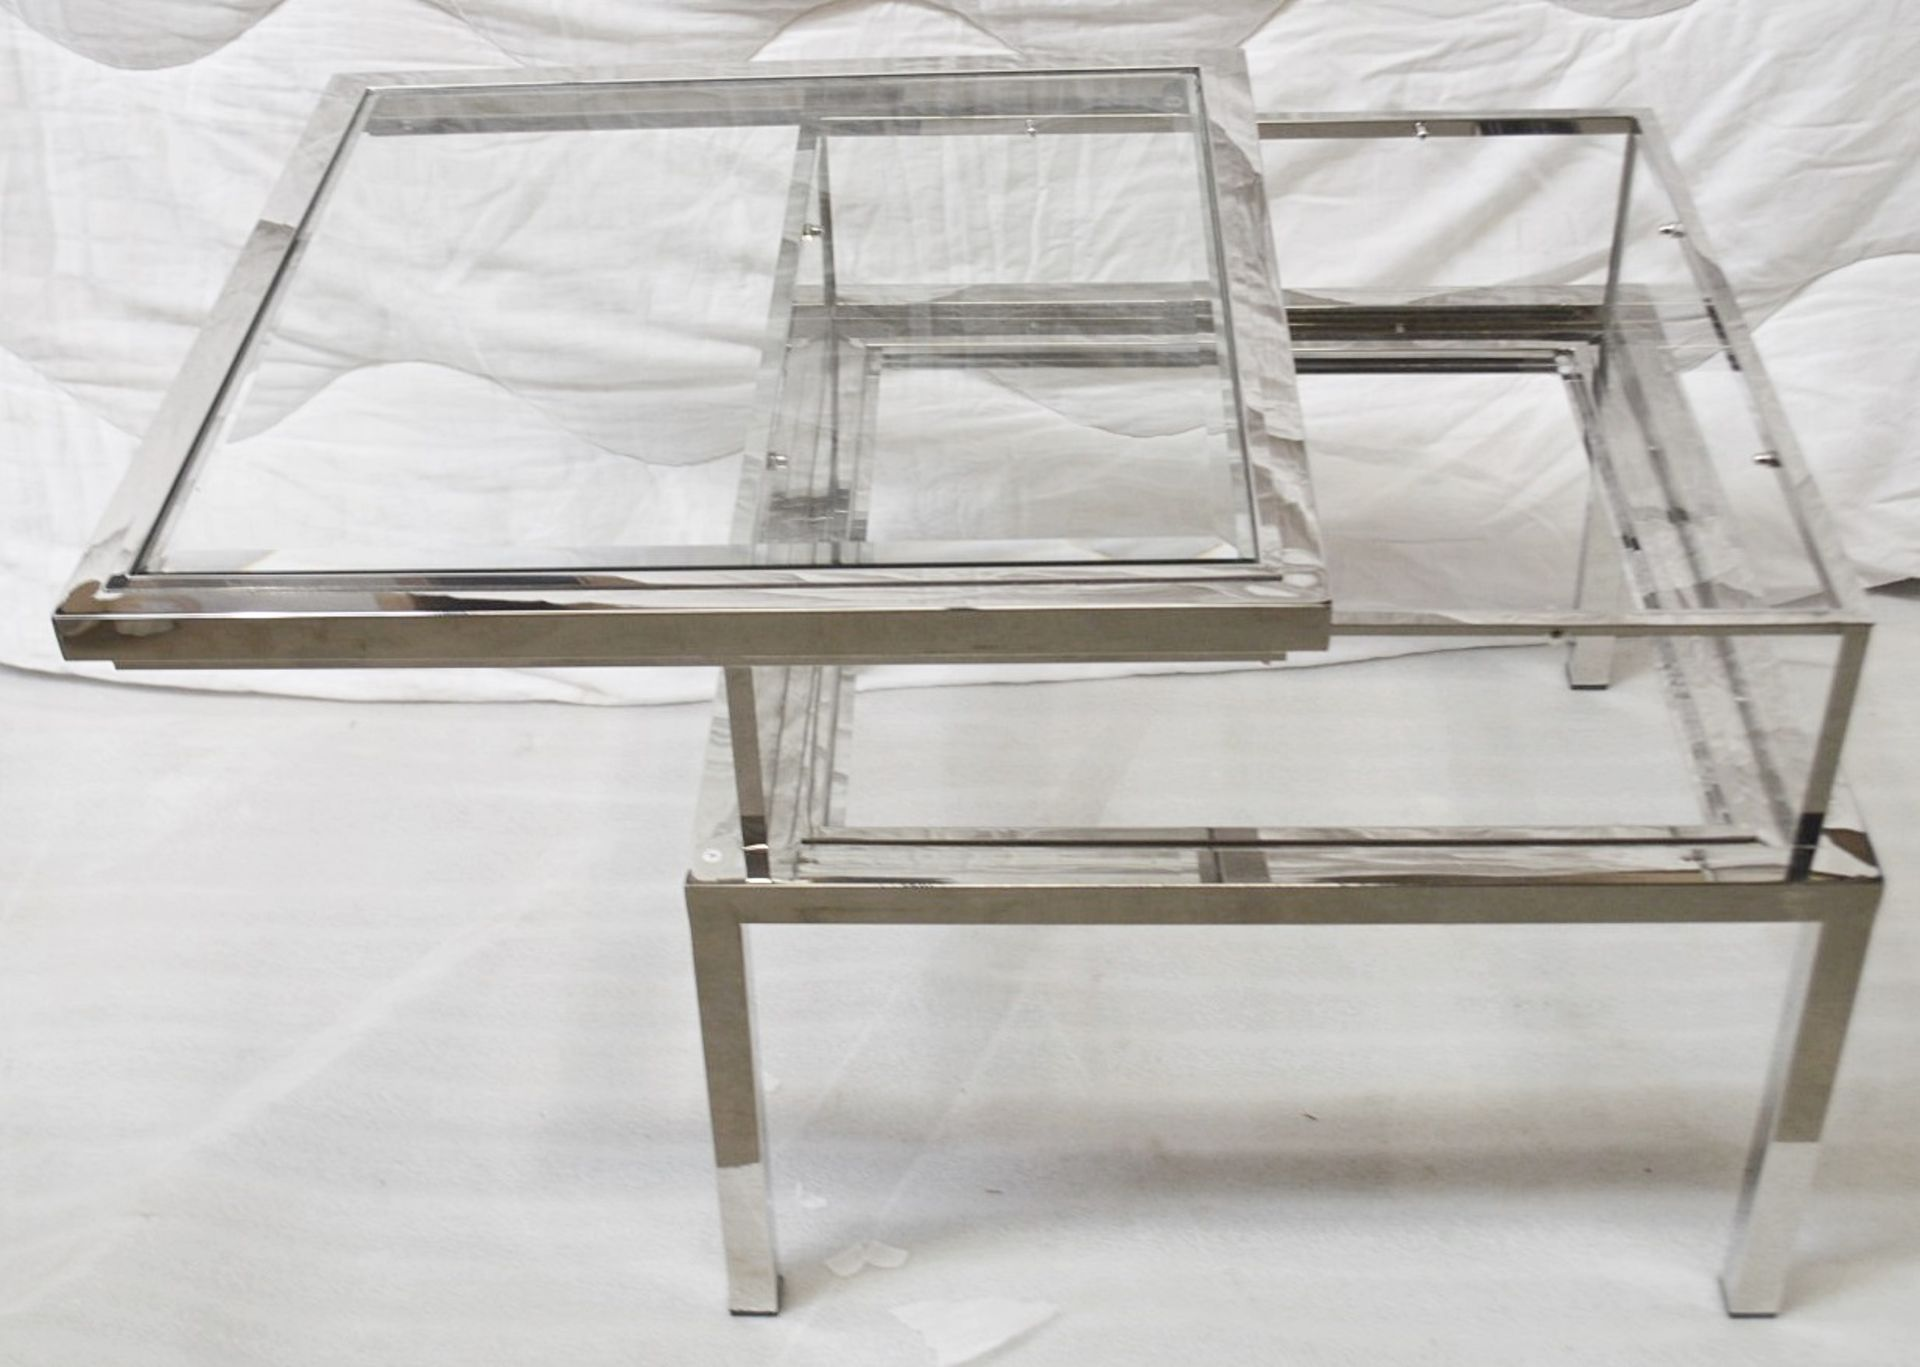 1 x EICHHOLTZ Glass Topped Side Table Harvey With A Polished Steel Frame - Original RRP £1,690 - Image 3 of 3